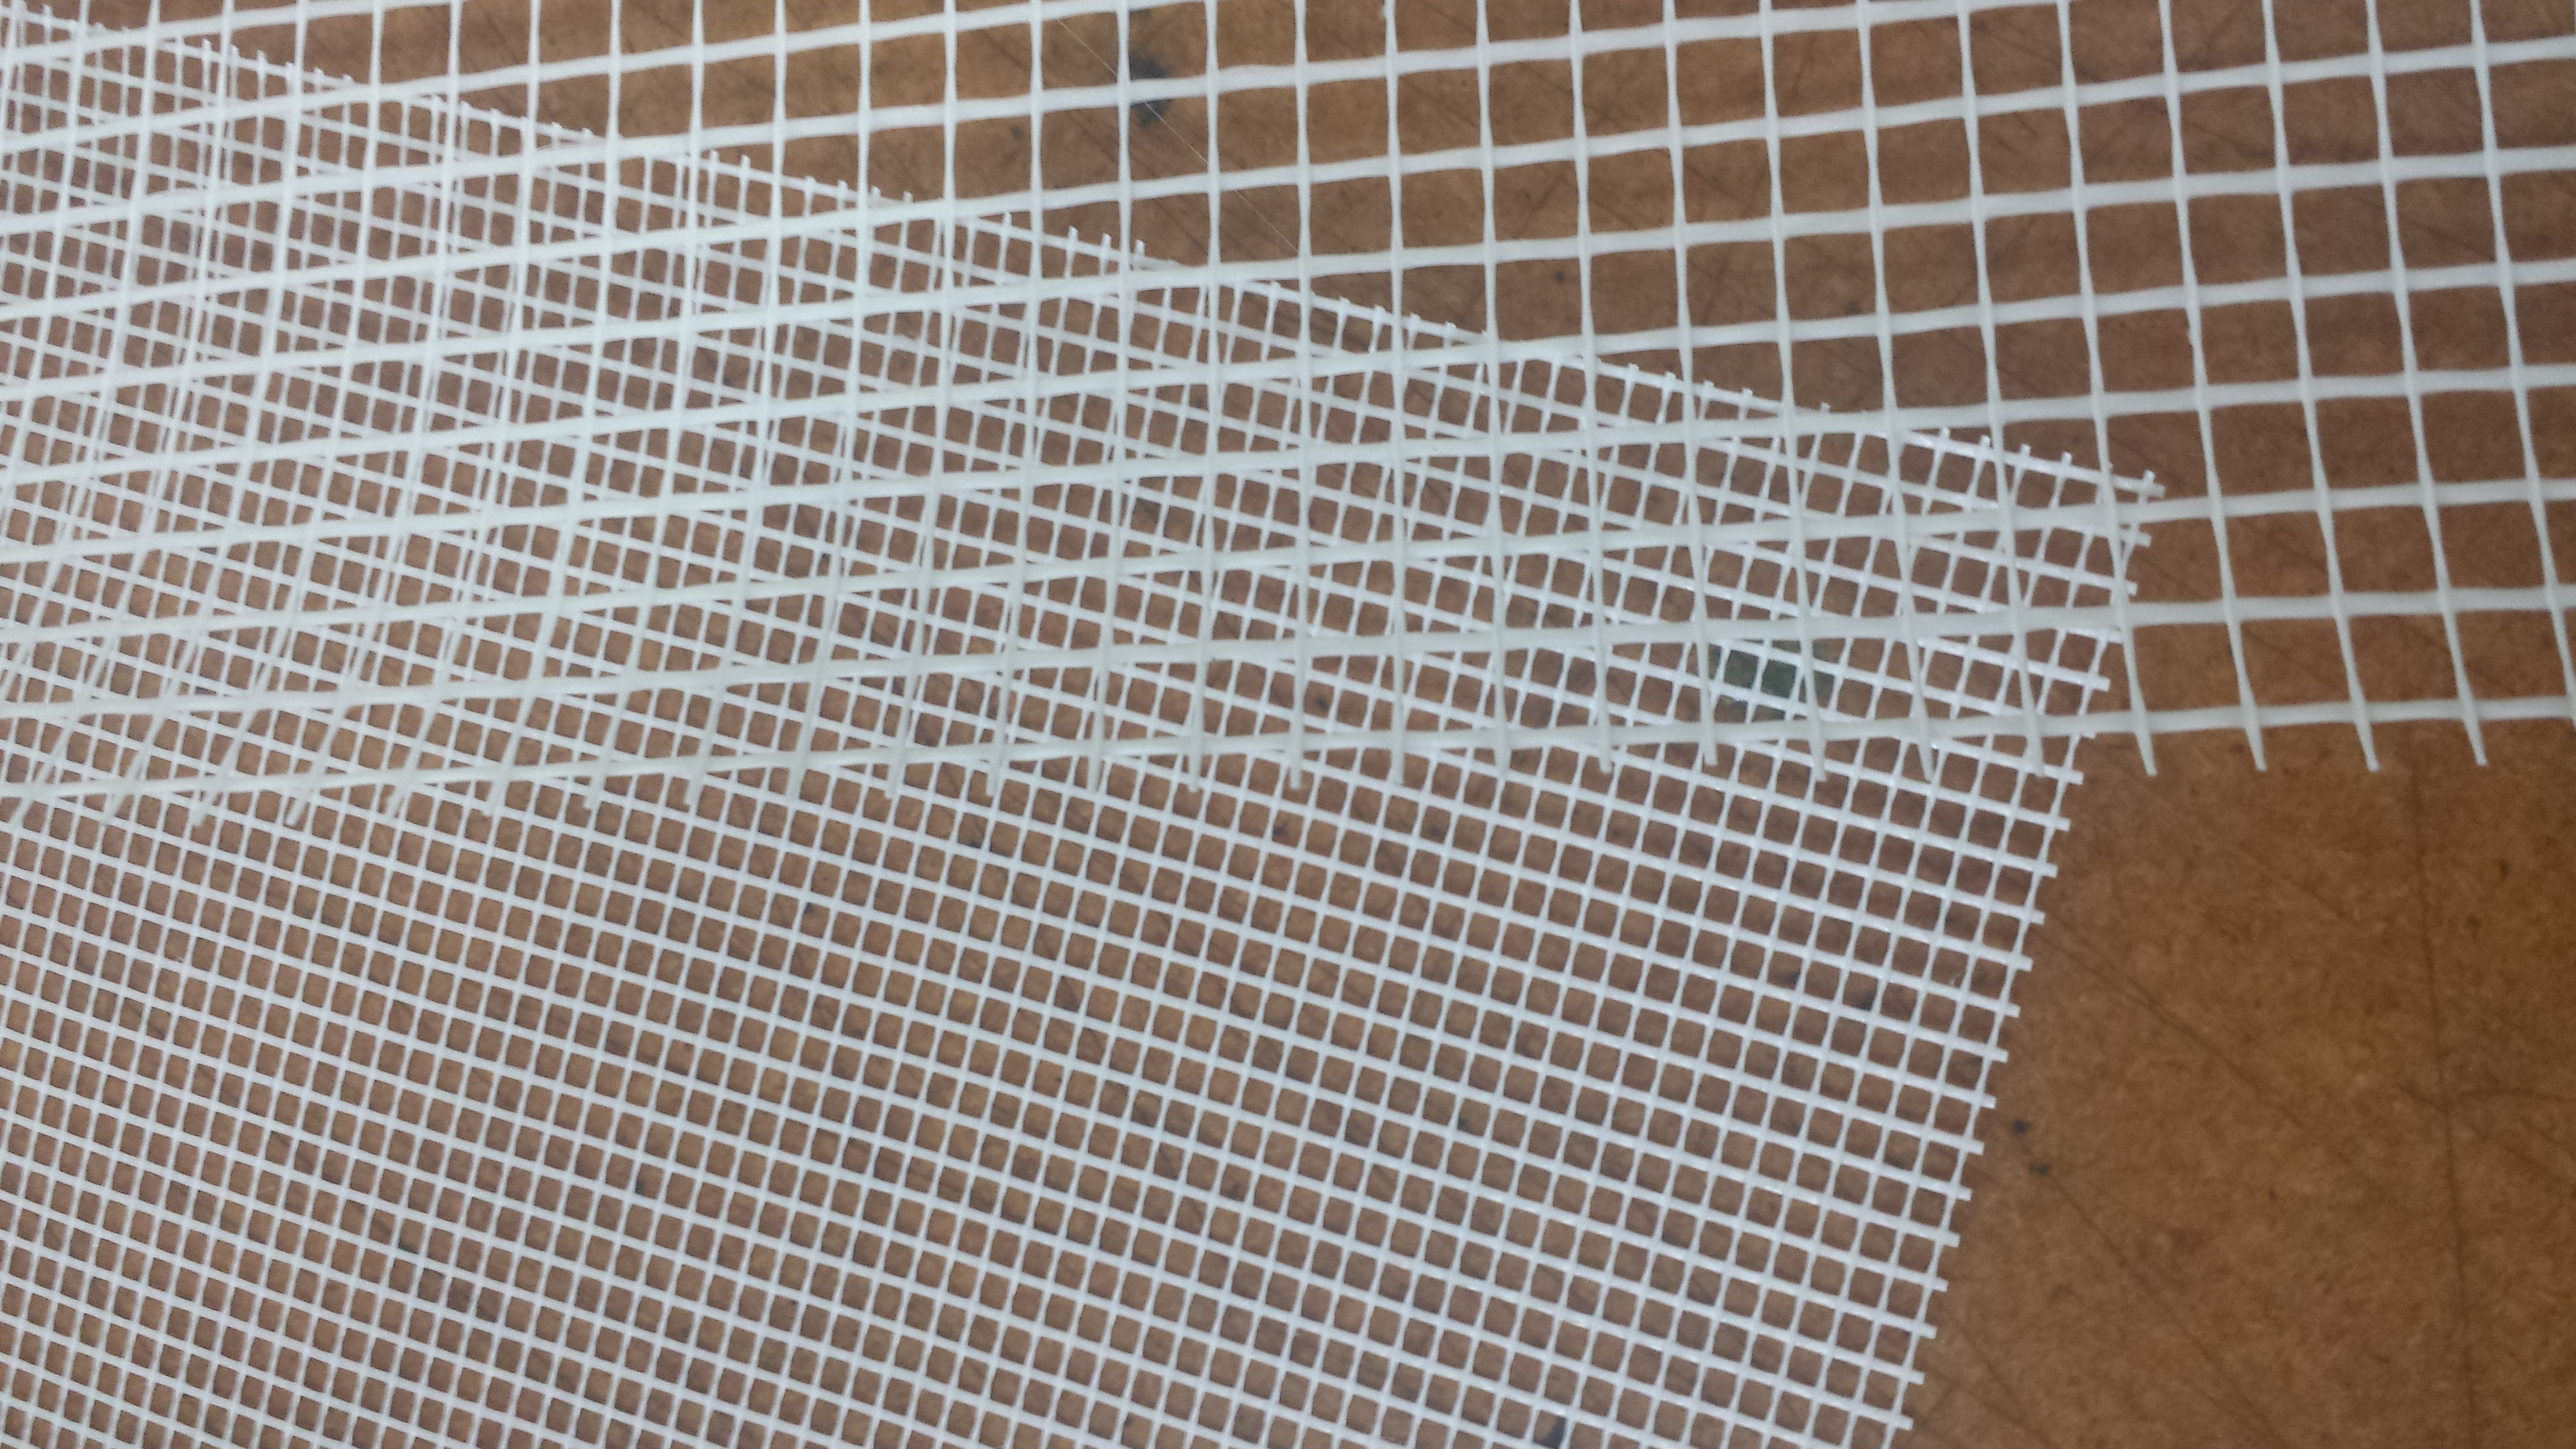 Mosaic Fibreglass Mesh Fibreglass Amp Resin Sales Pty Ltd